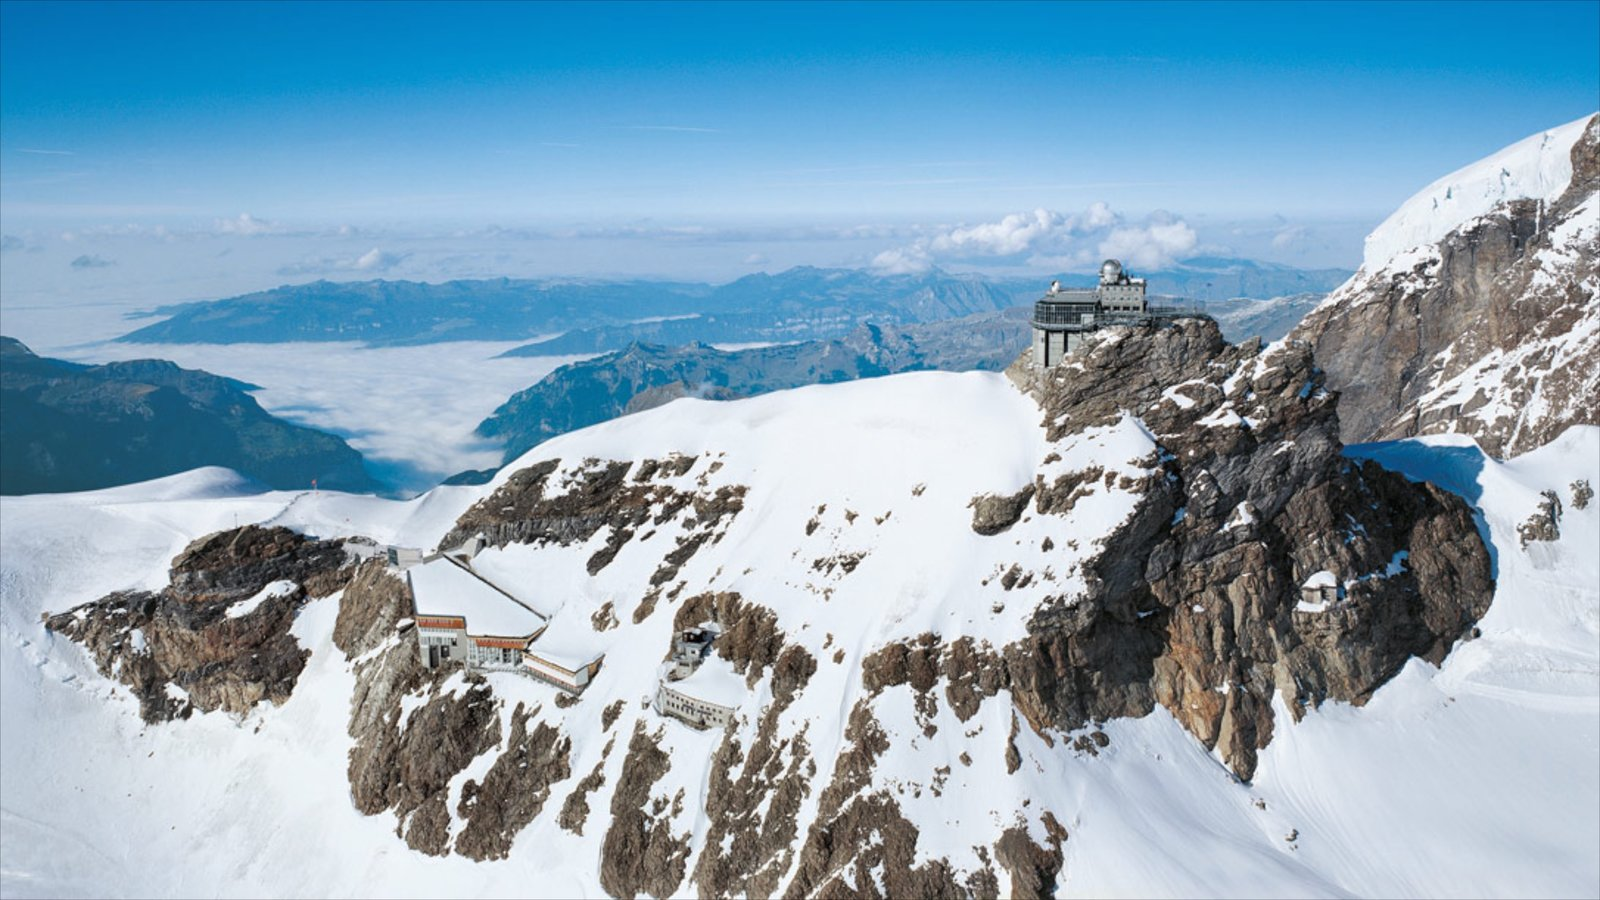 Jungfraujoch showing mountains, snow and an observatory